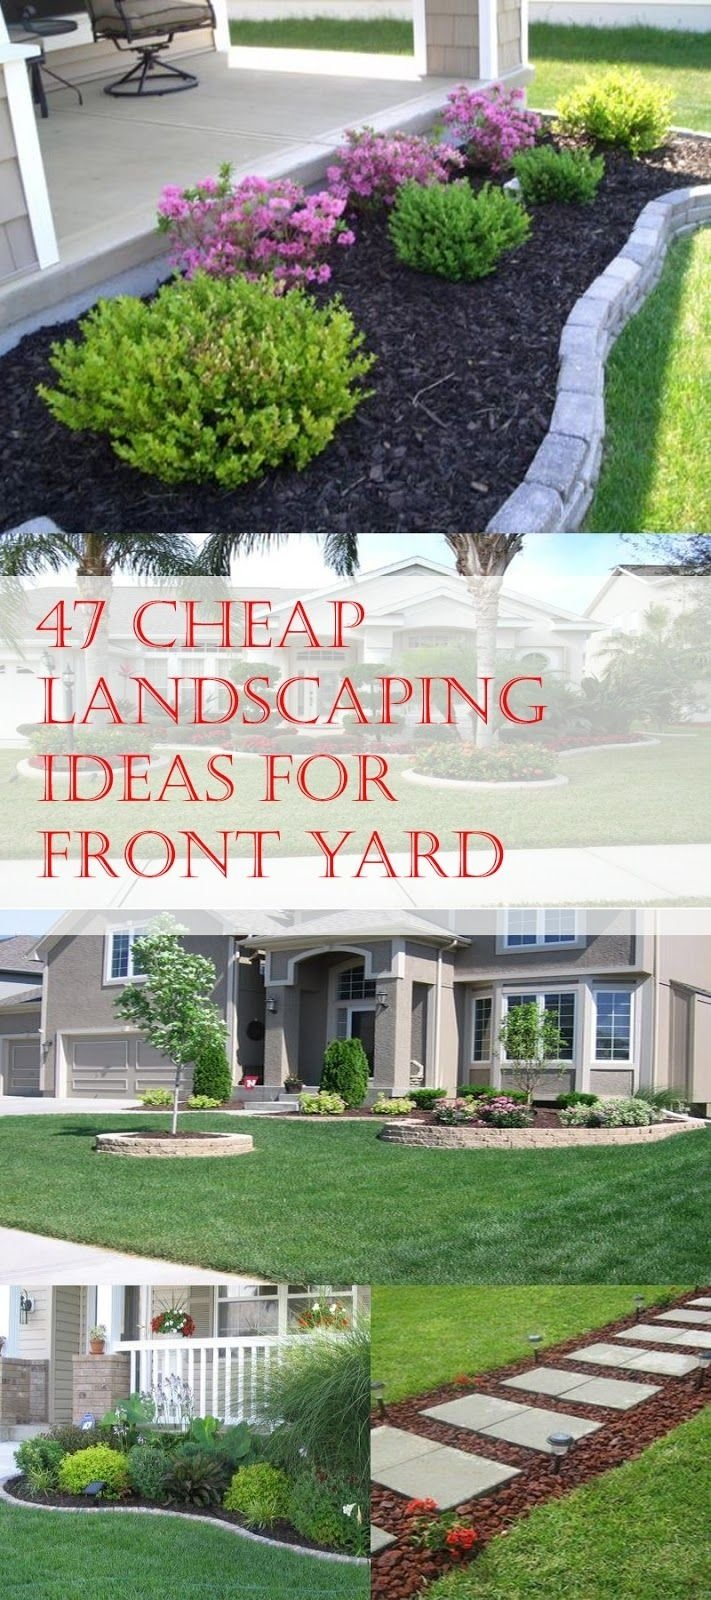 10 Spectacular Cheap Landscaping Ideas For Front Yard 47 cheap landscaping ideas for front yard cheap landscaping ideas 2020